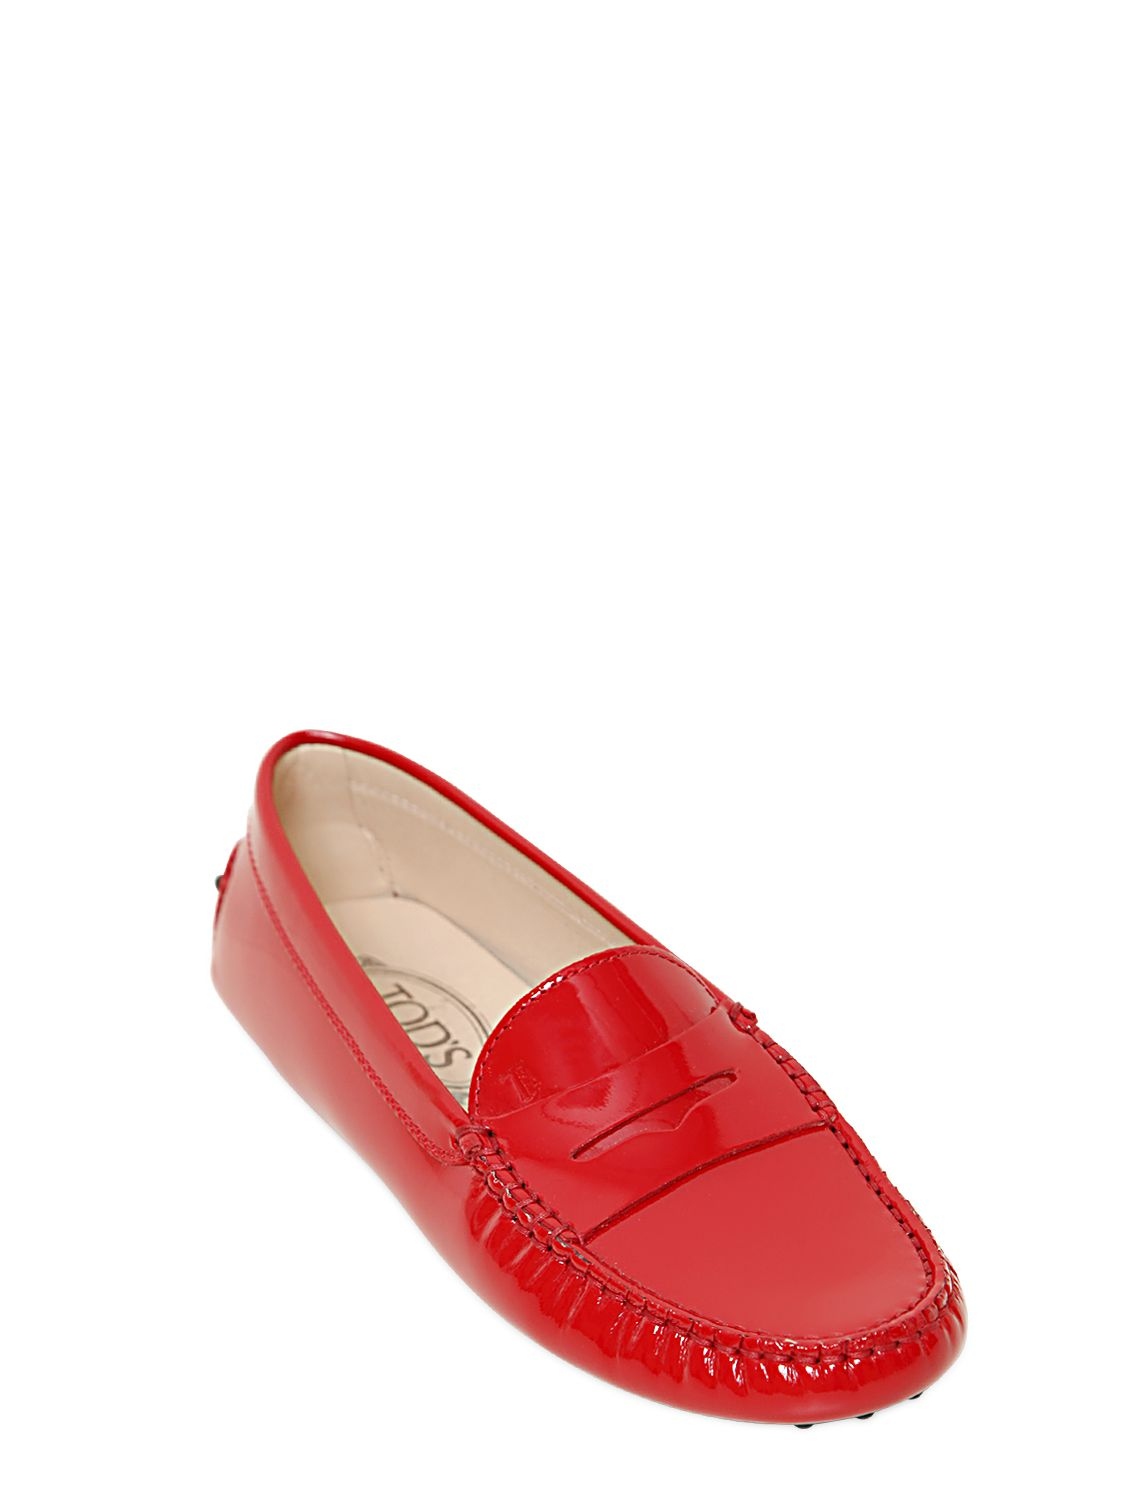 Gommino Embellished Patent-leather Loafers - Red Tod's zHxrs